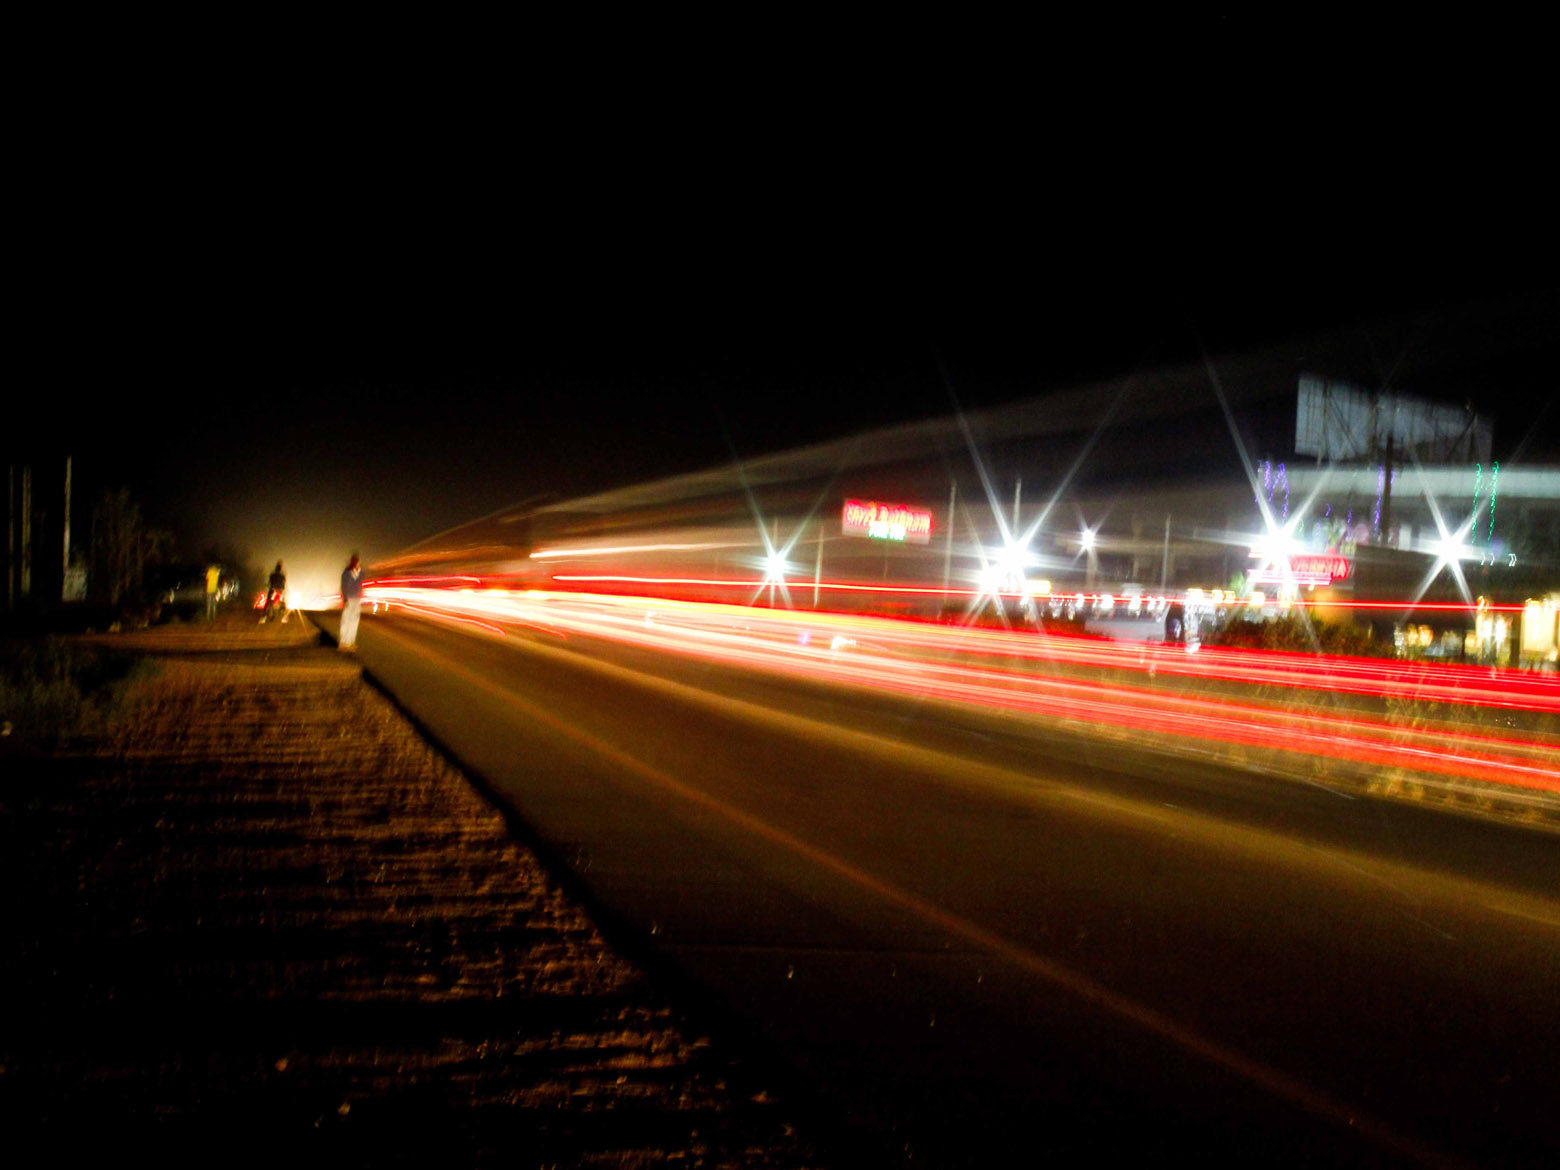 Vehicle headlights glowing on highway during nights